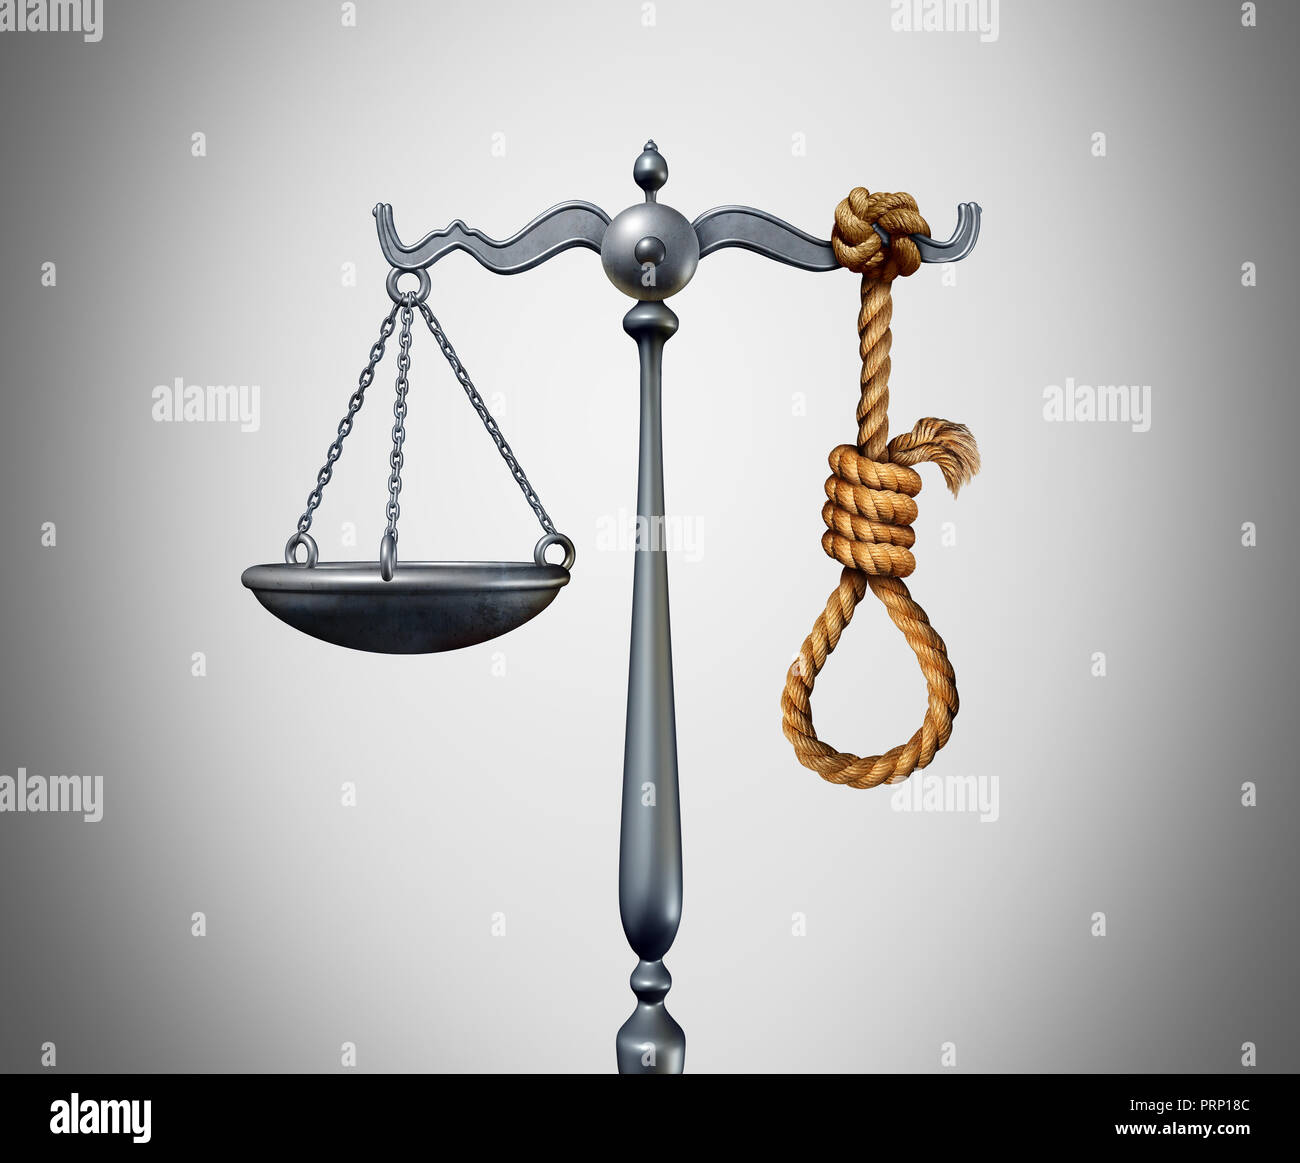 Capital punishment and death penalty as a criminal killed by the government for the crime of murder with 3D illustration elements. - Stock Image